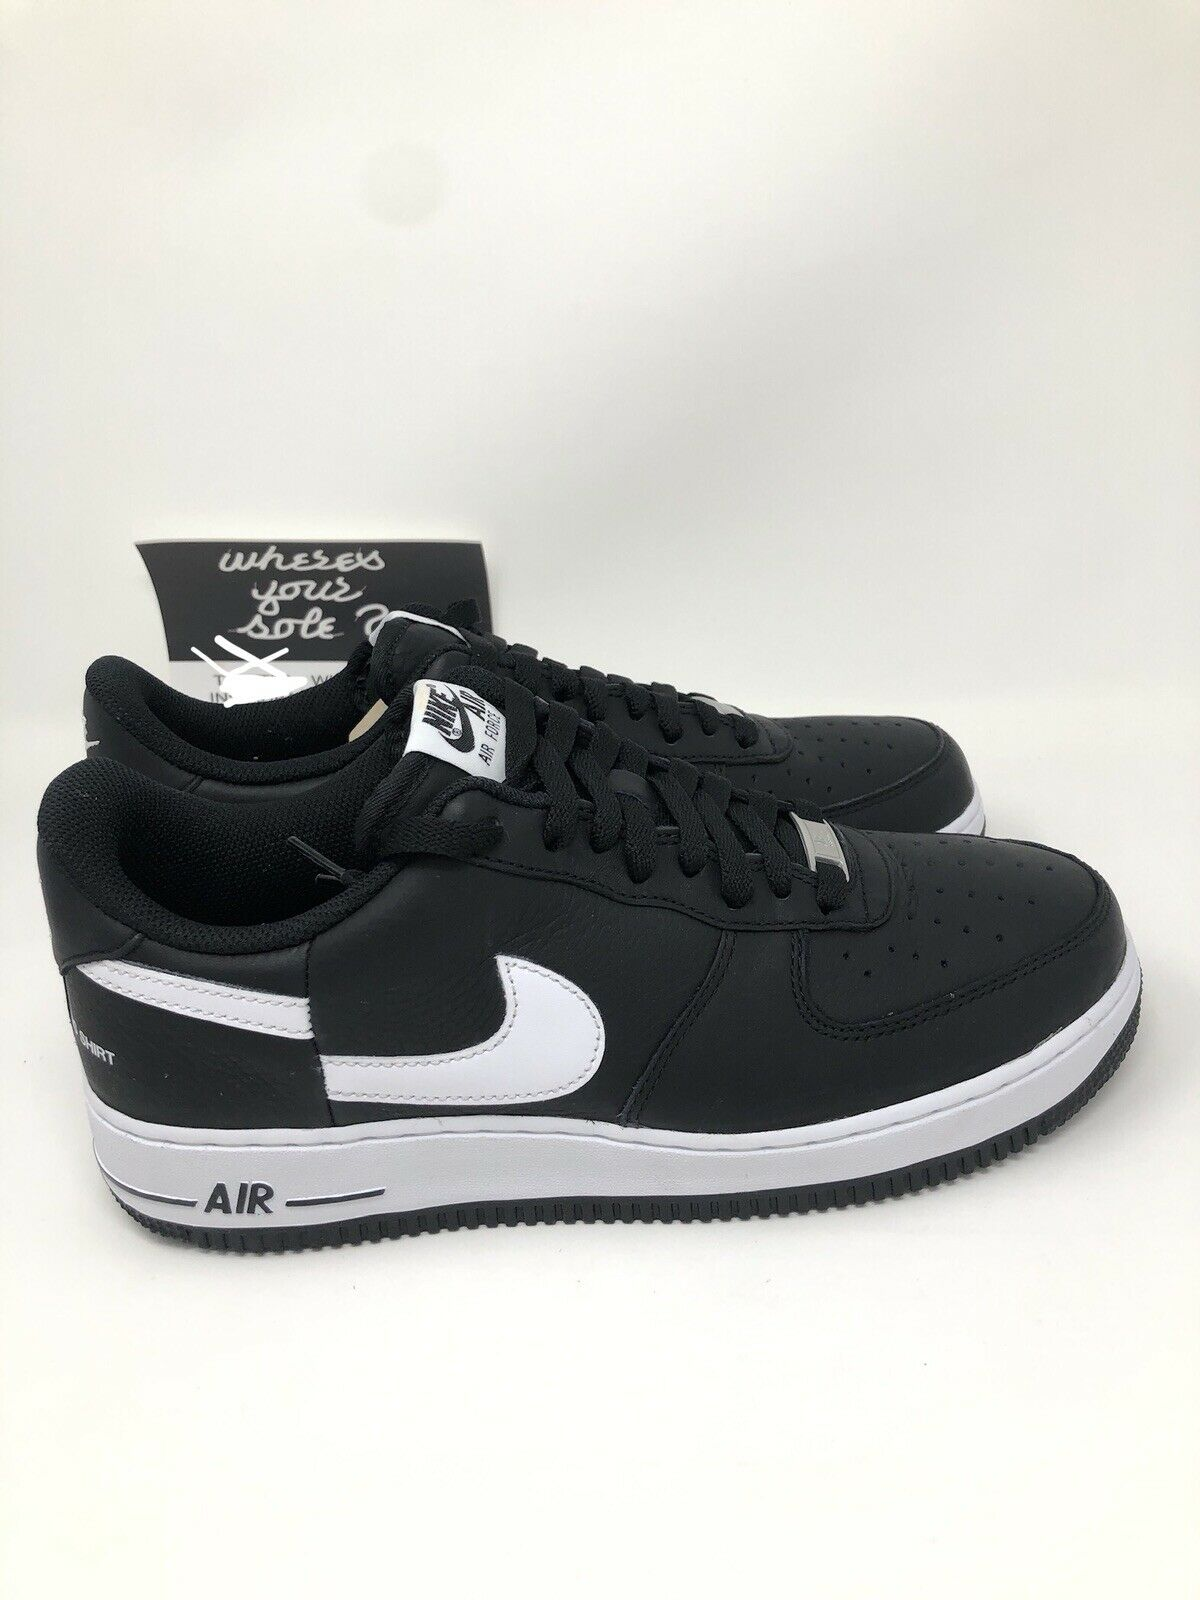 f4de3c90dc886 Nike Supreme CDG Comme Des Garcons Air Force 1 Low Black size 9 New AR7623-